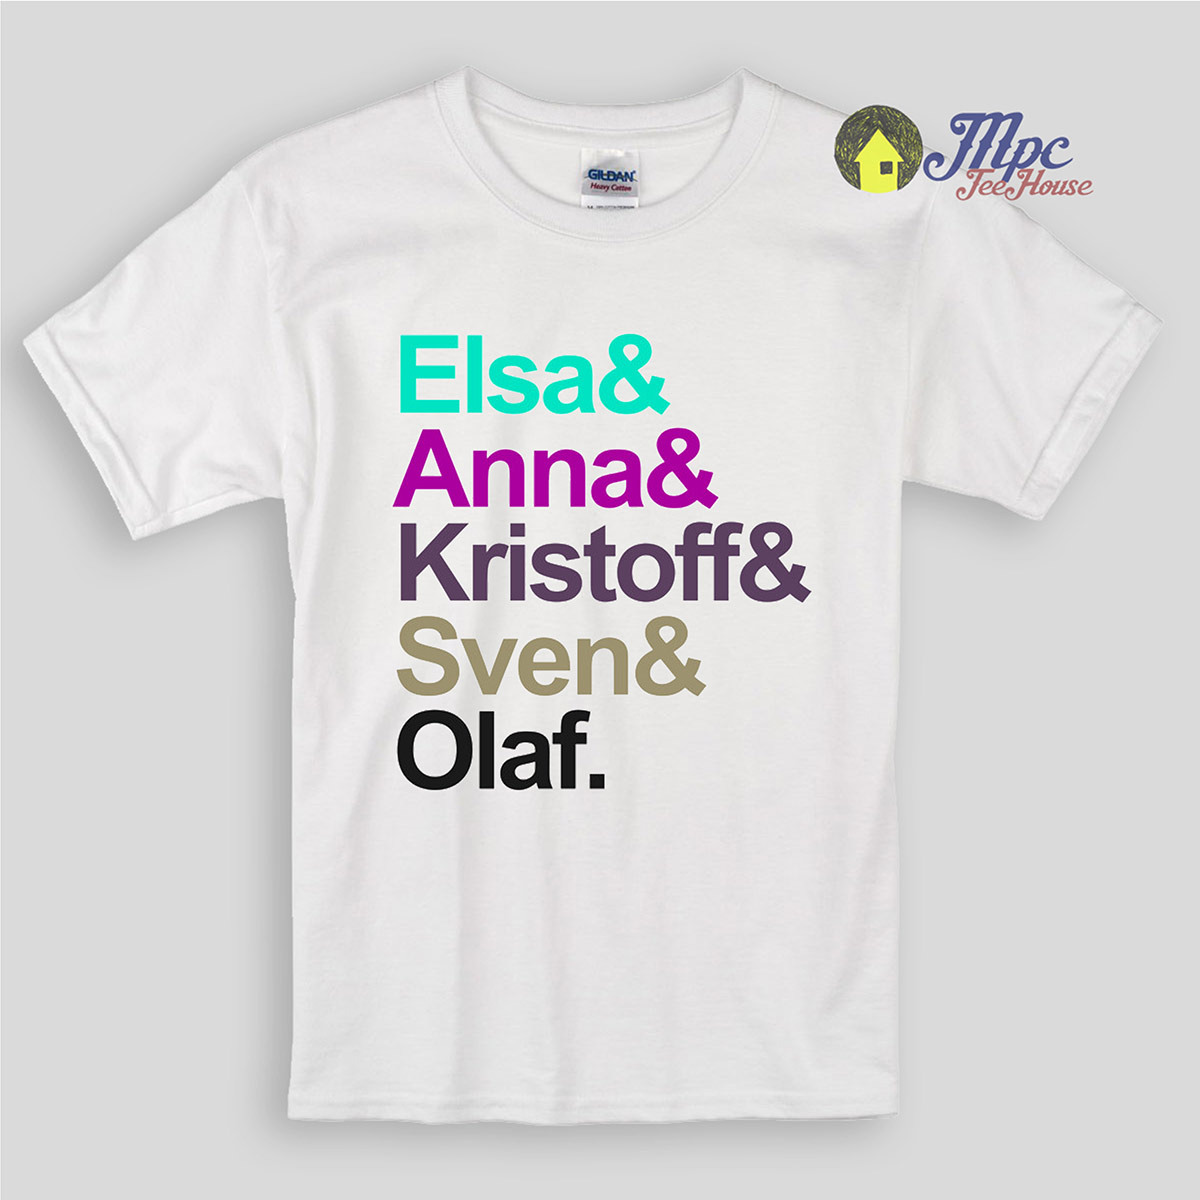 Frozen Family Kids T Shirts | Mpcteehouse: 80s Tees